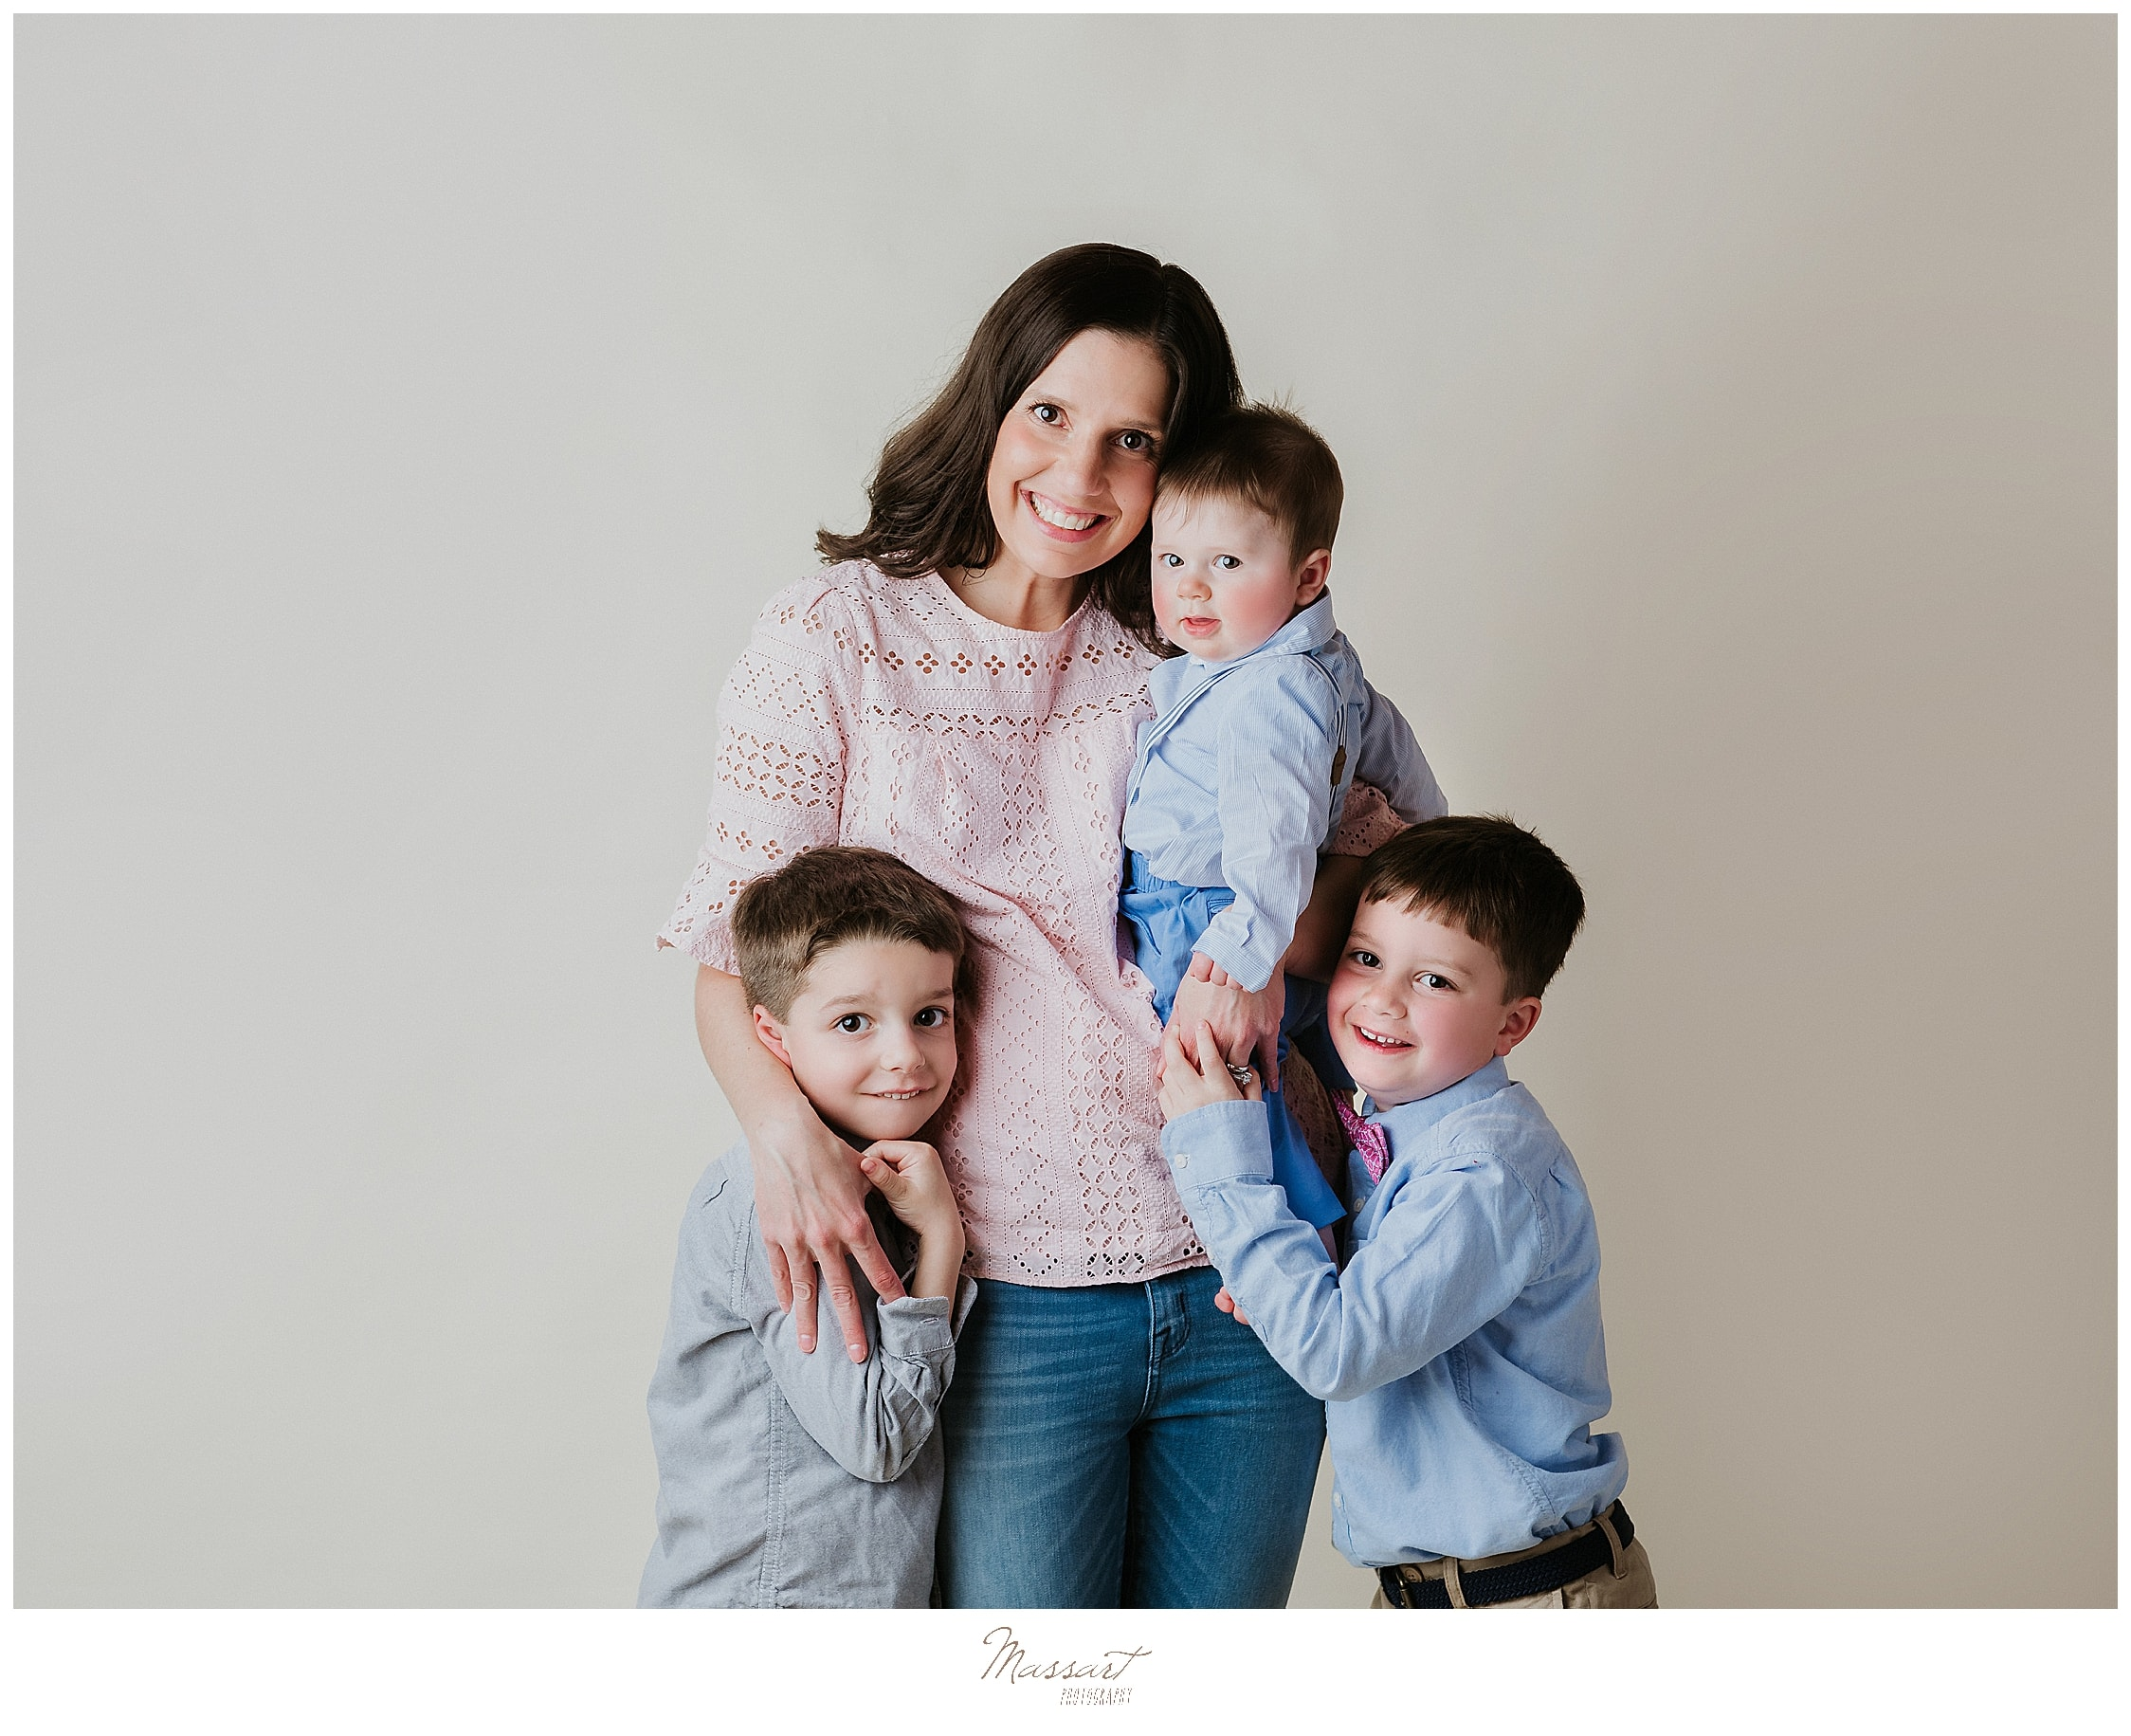 Mother poses with her sons for a family portrait at a Rhode Island photo studio